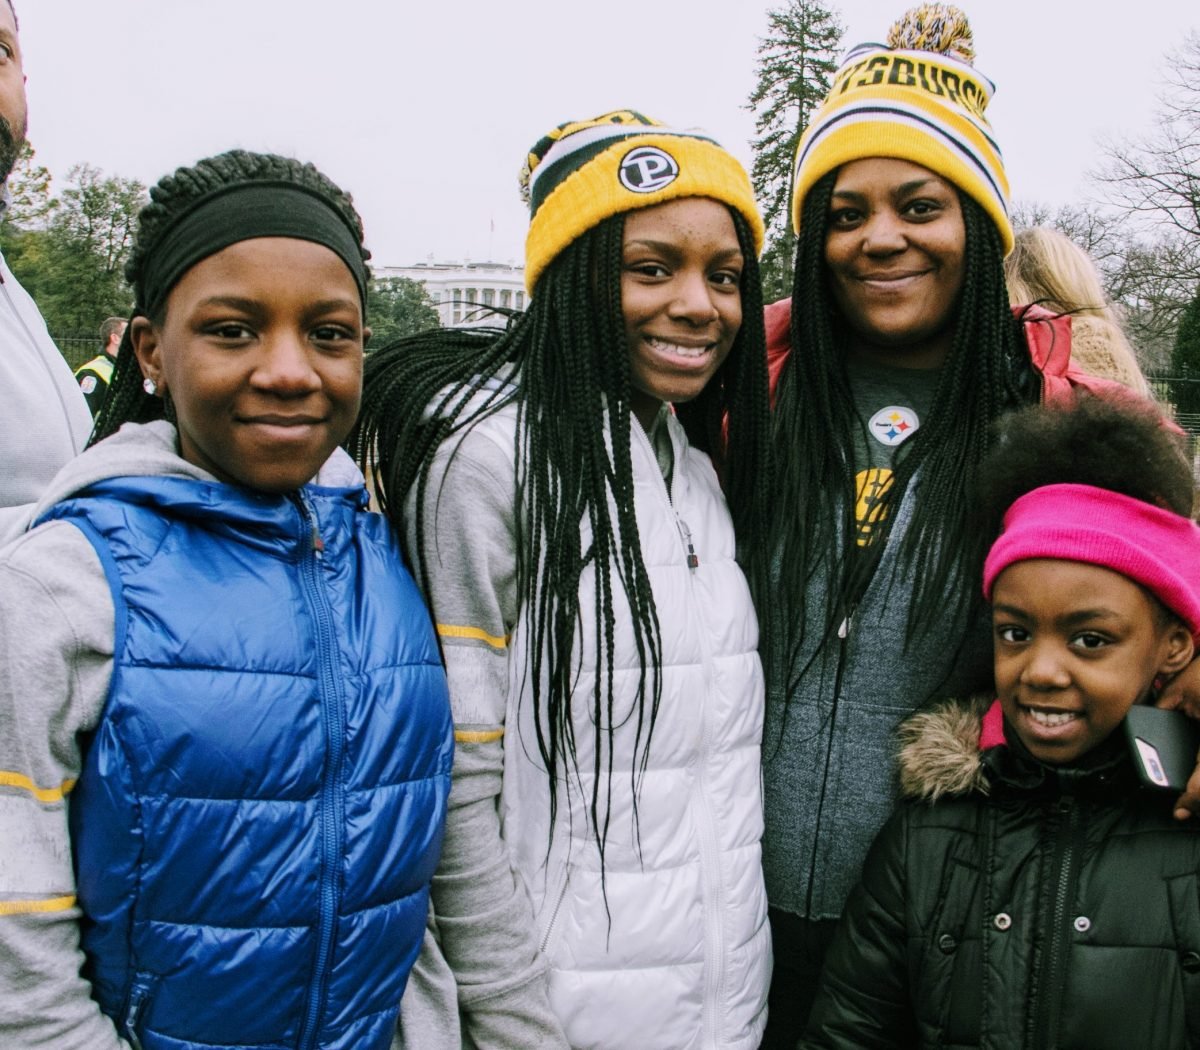 Over one million women converged on downtown DC on January 21, and over 5 million marched worldwide, to make their voices heard for equal rights. /Photo by Shevry Lassiter